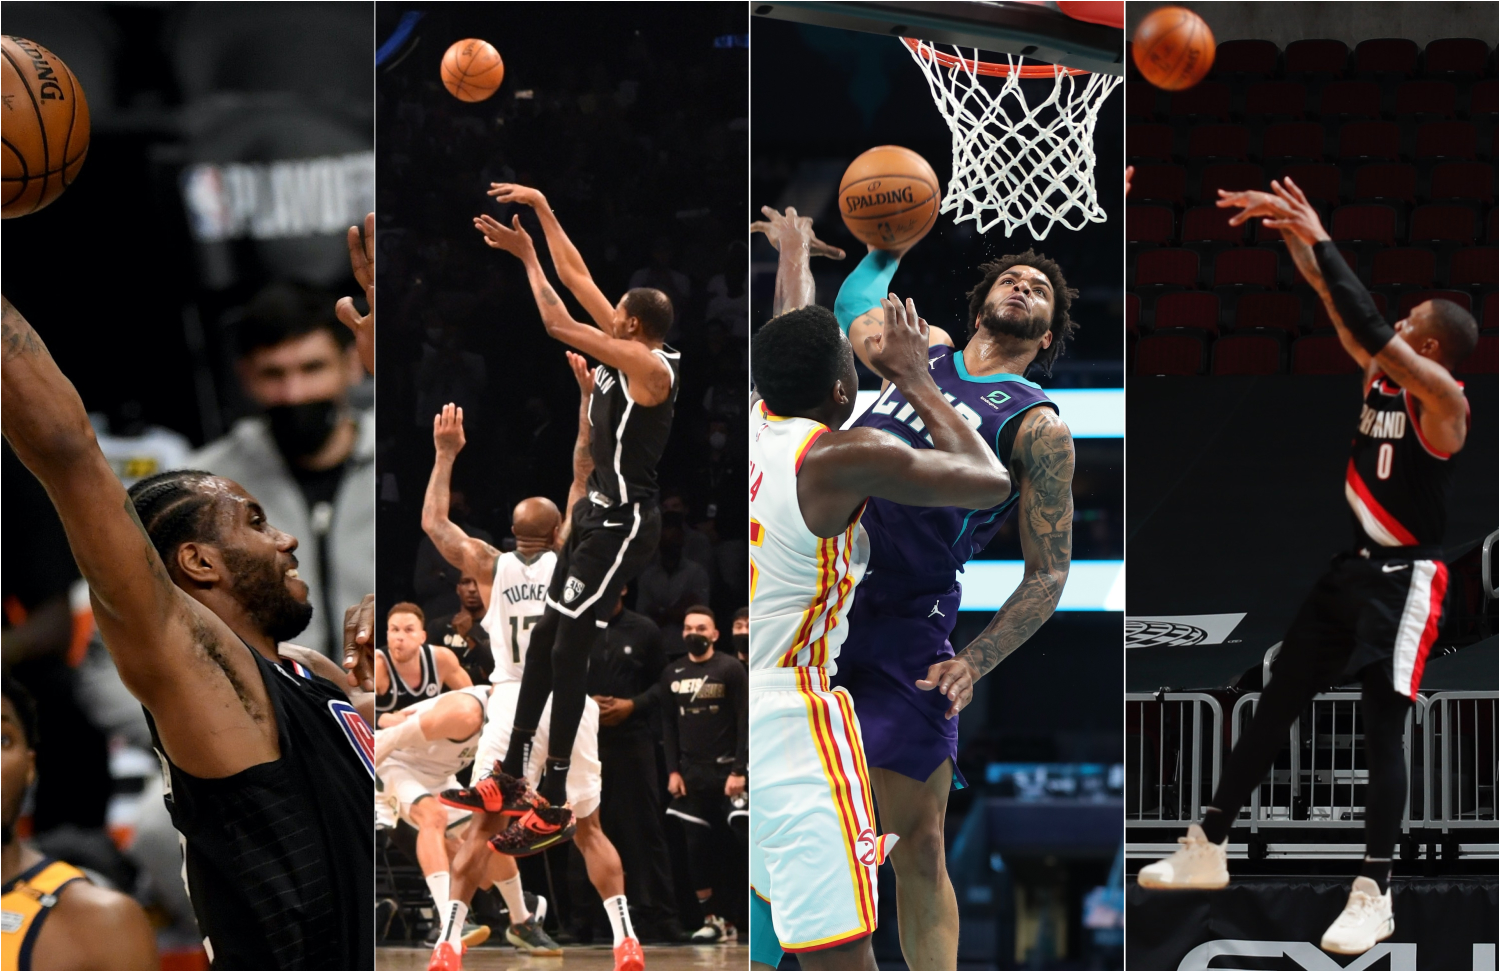 Ready for more awesome plays? It's the Top 10 of the NBA's Top 100 plays of the 2020-21 season.